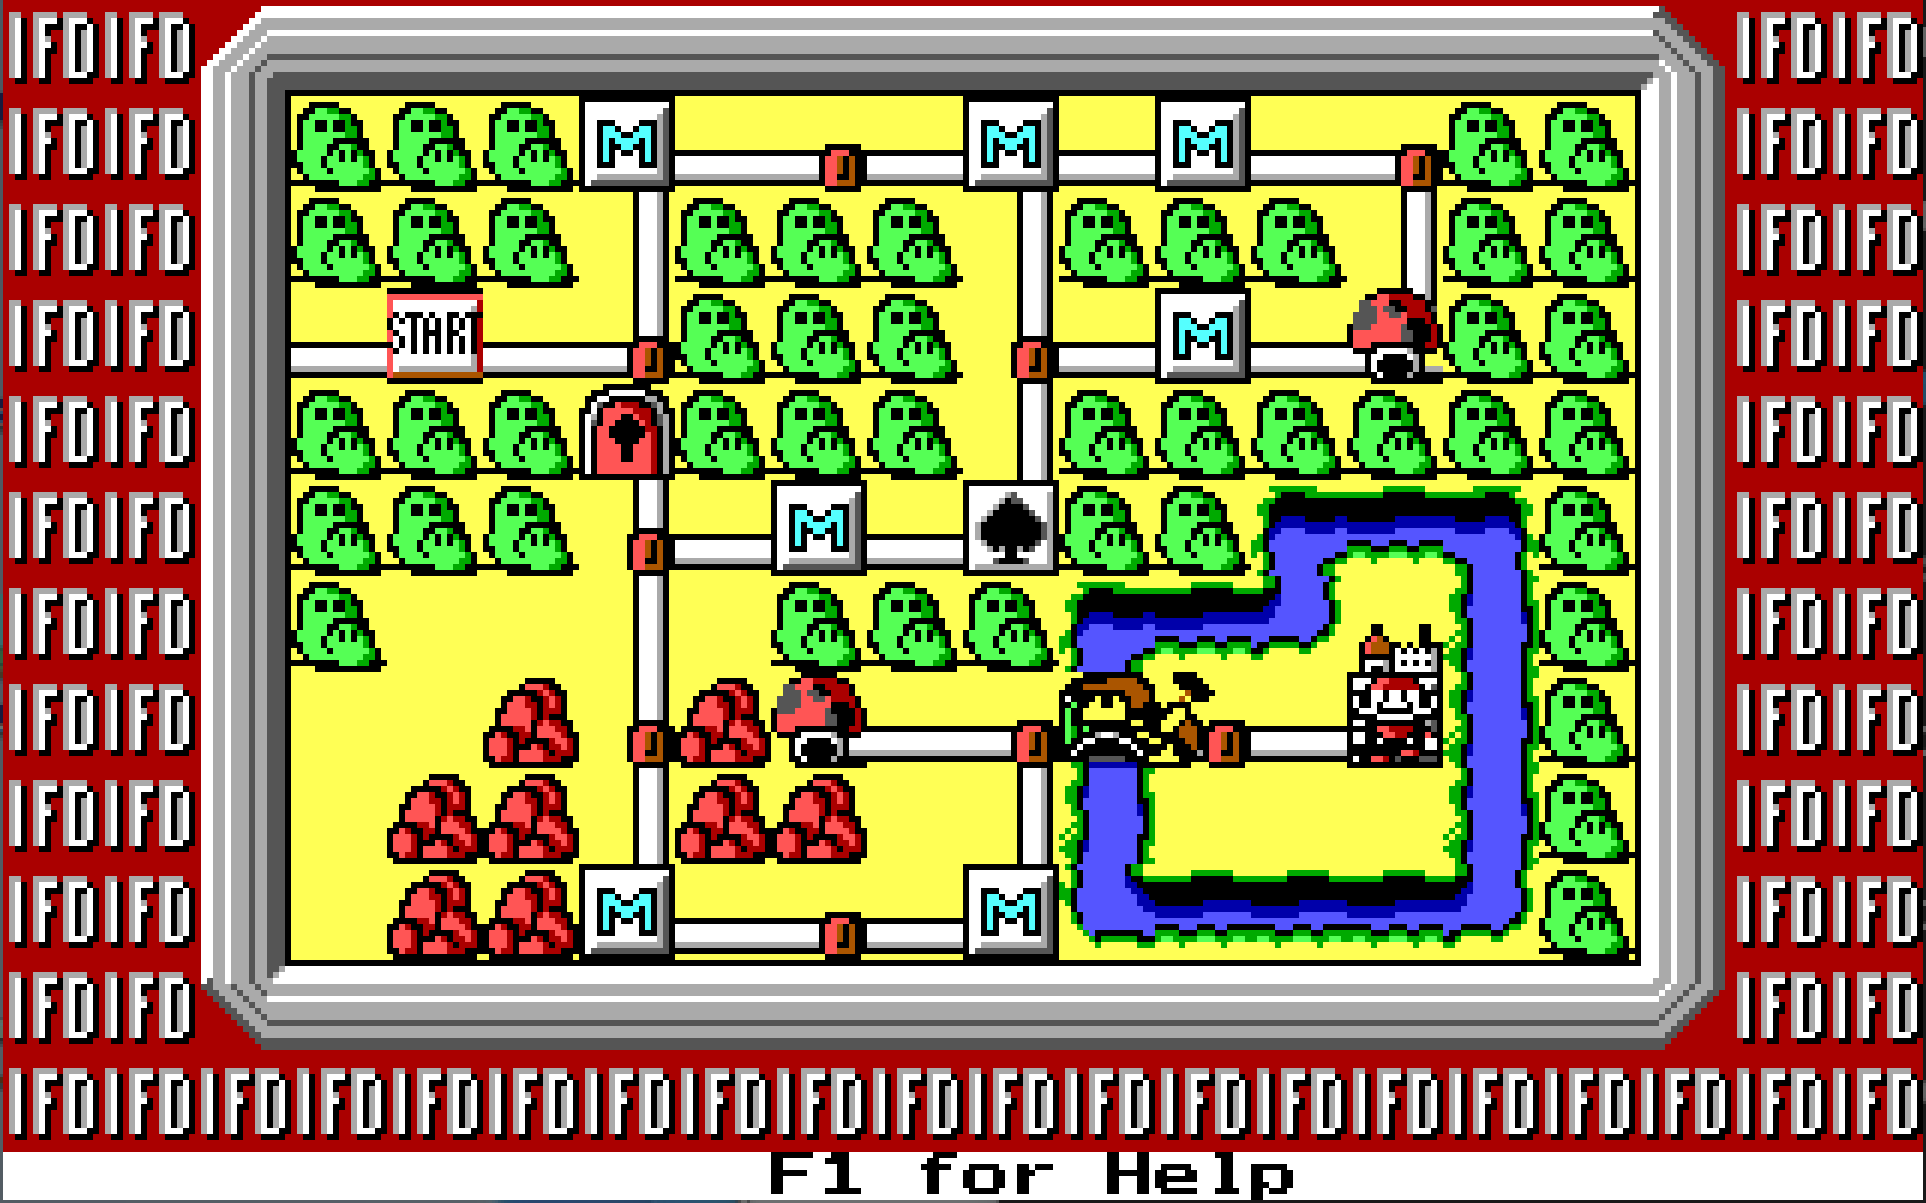 id Software's PC port of Super Mario Bros. 3 has been donated to the Strong Museum of Play